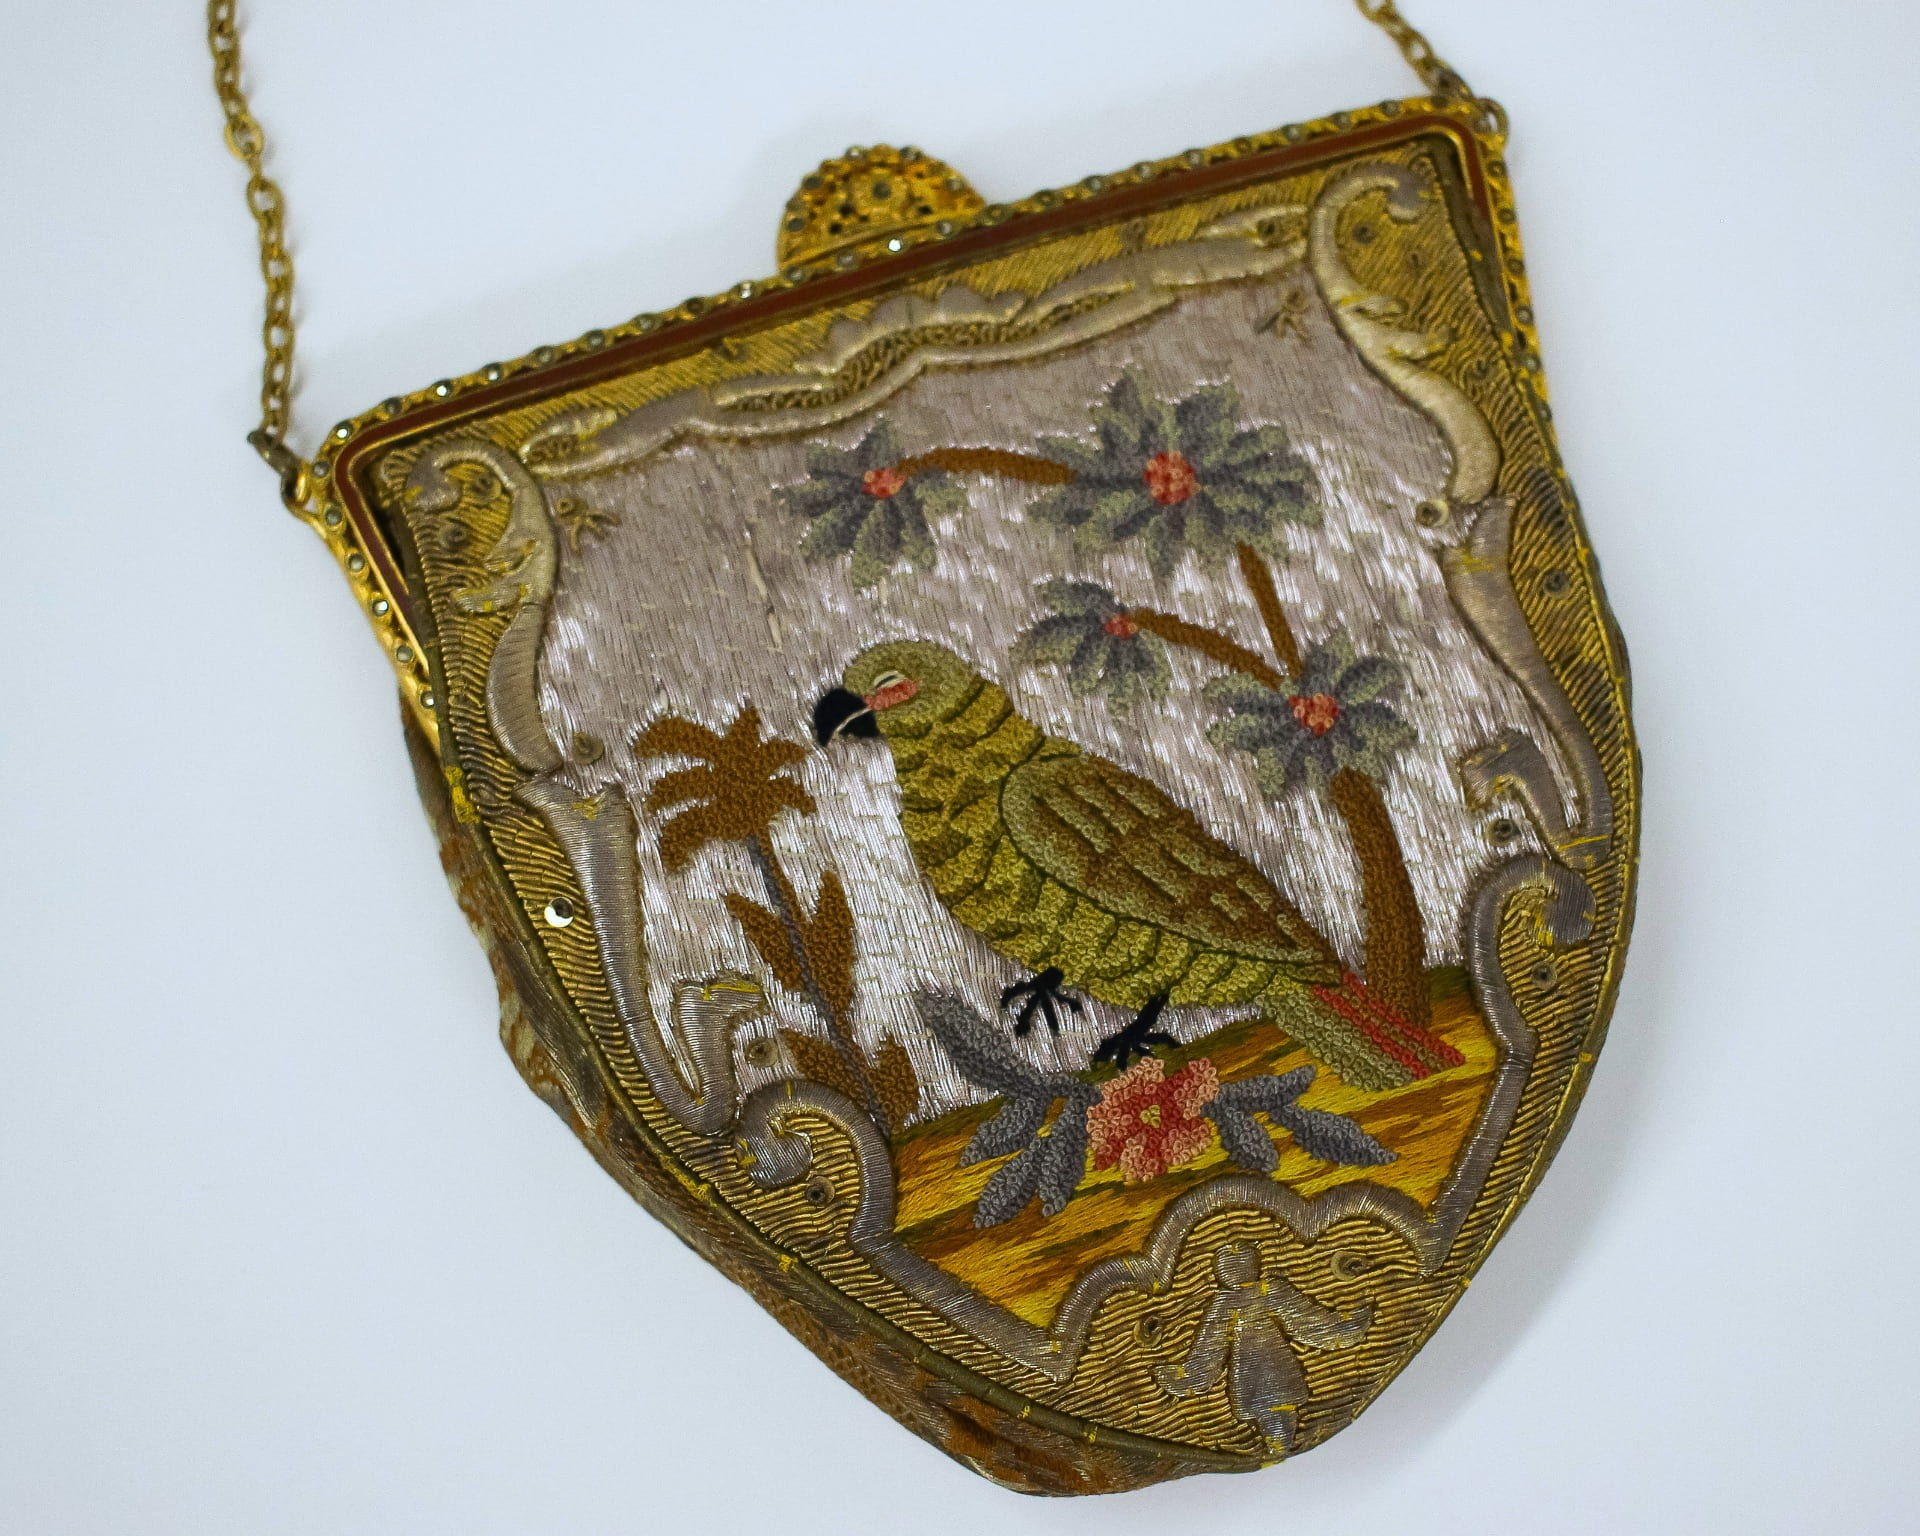 Embroidered evening bag, circa 1920 - 1932, that may depict a parrot in the genus Amazona; however, because the parrot is represented on the ground it may be a Kakapo. Photo by Grace Anderson.